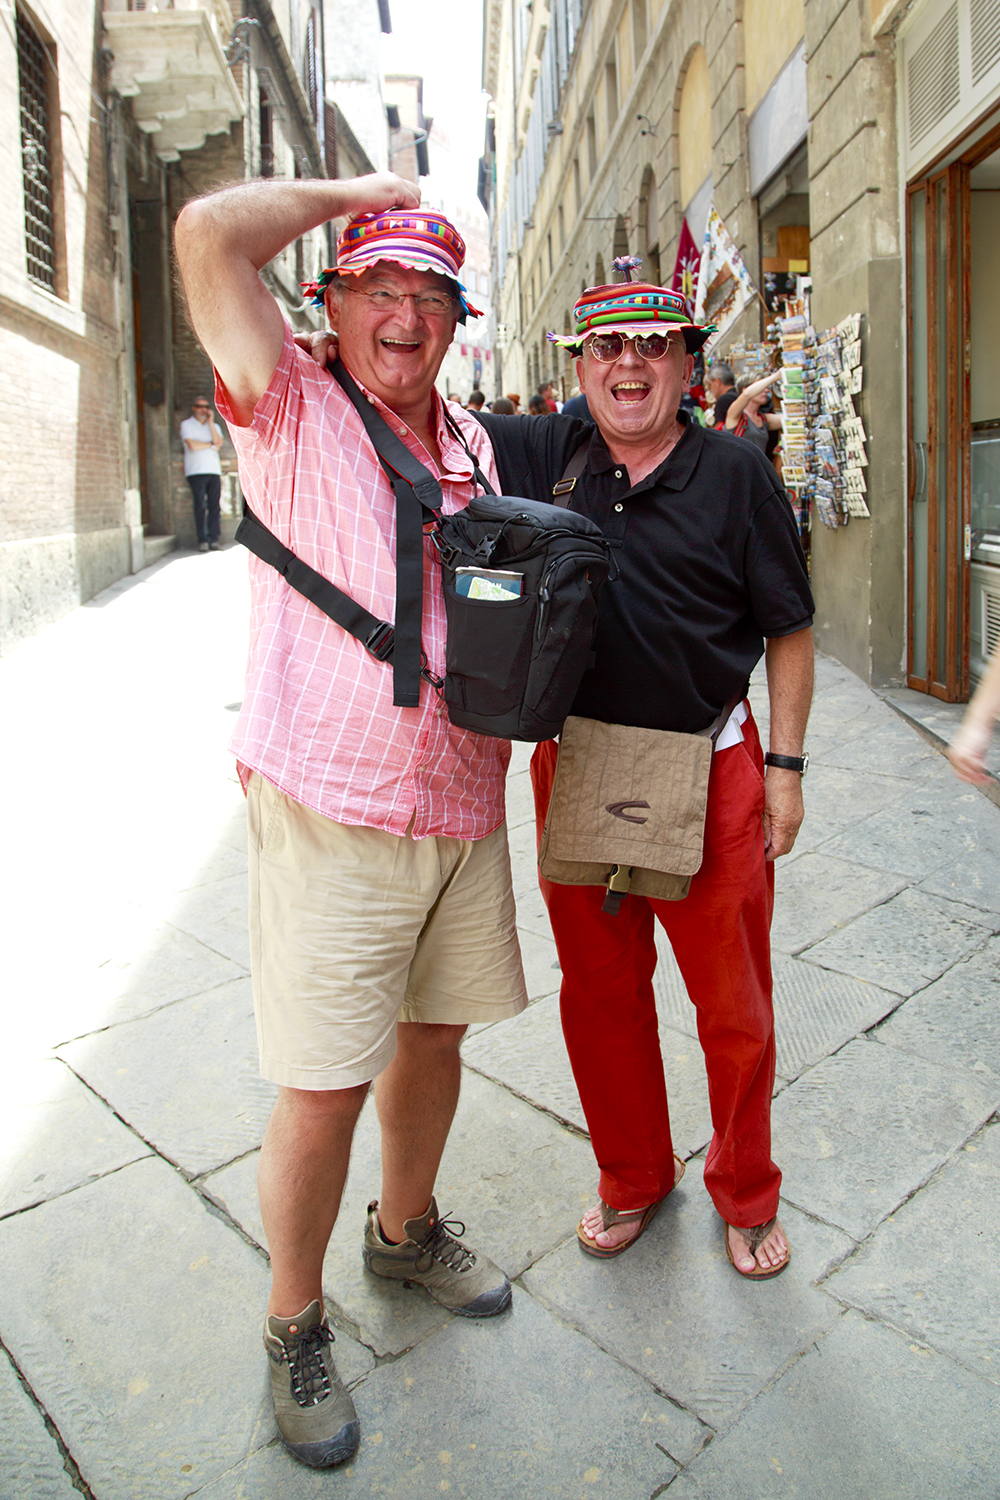 Suffusing My Senses In Siena - Image 19